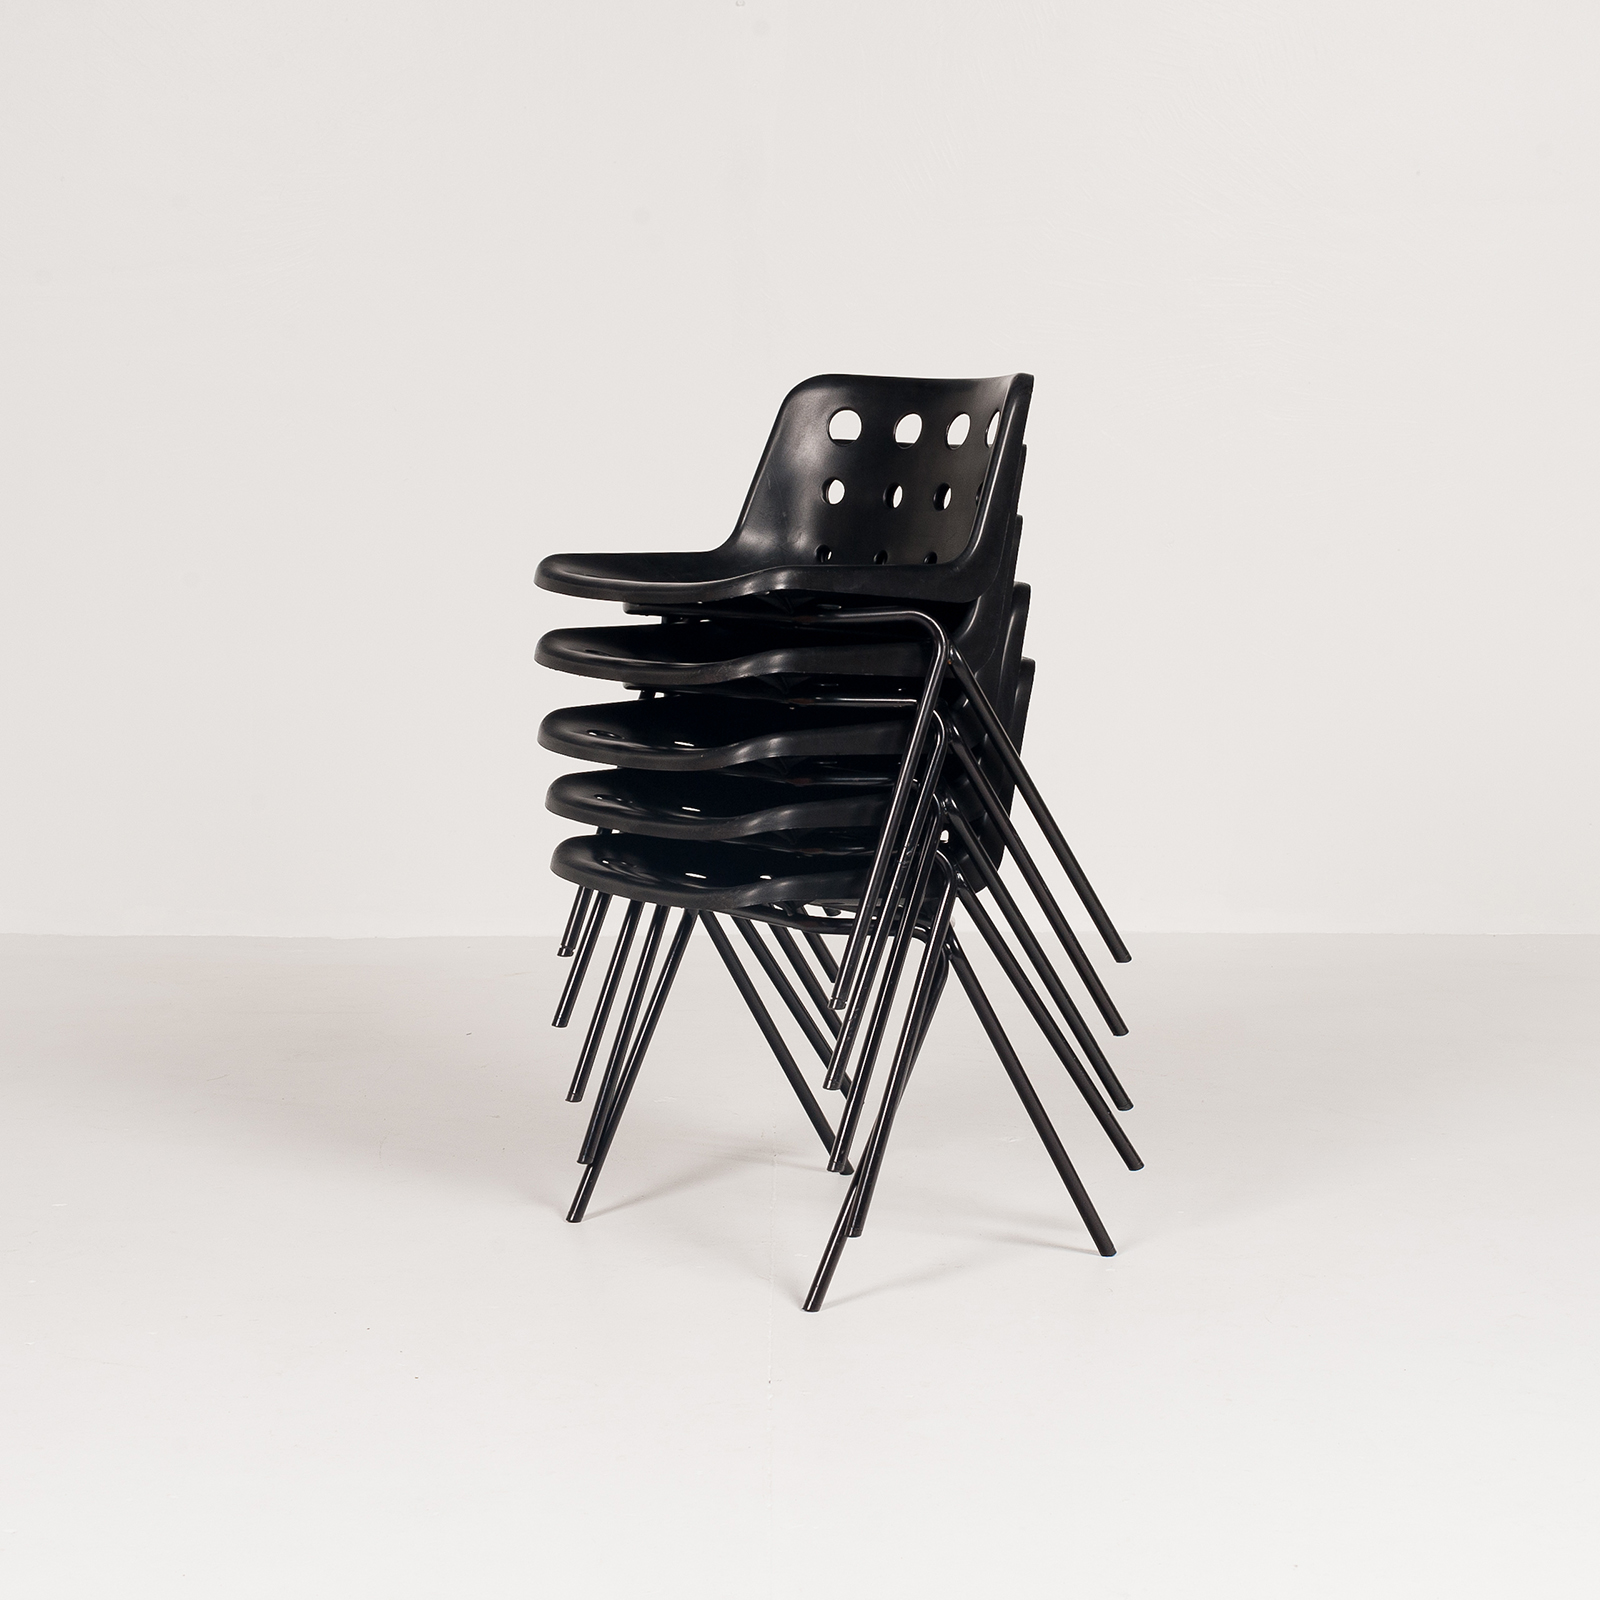 Polo Stacking Chair By Robin Day In Black Polyproylene, 1970s, England5887